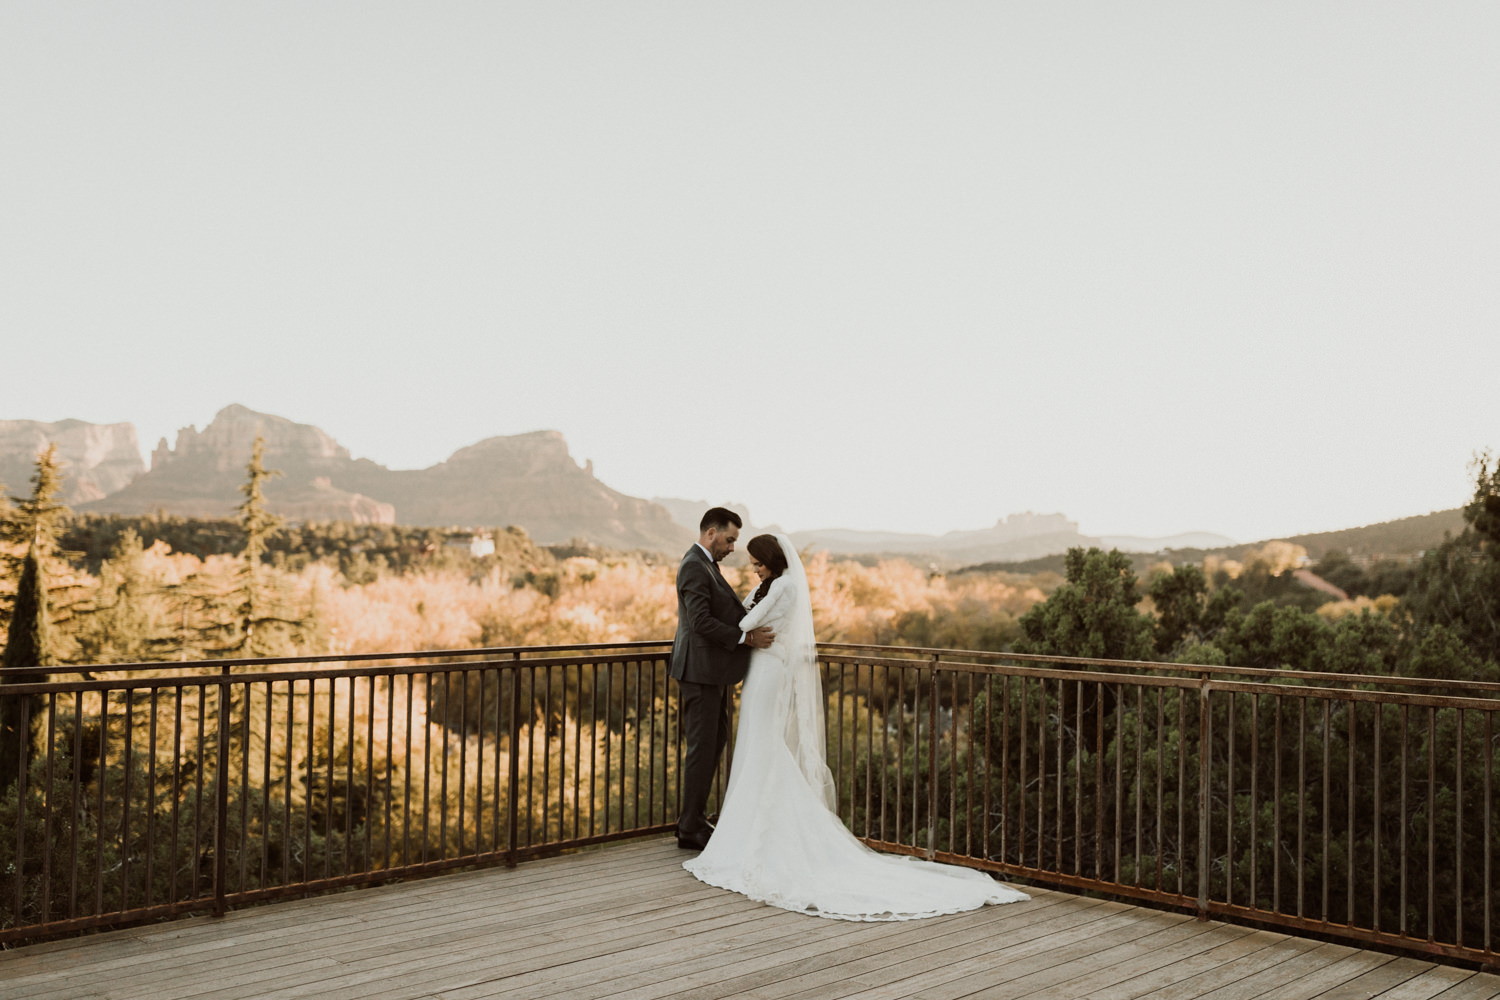 30_intimate-sedona-arizona-wedding-43.jpg